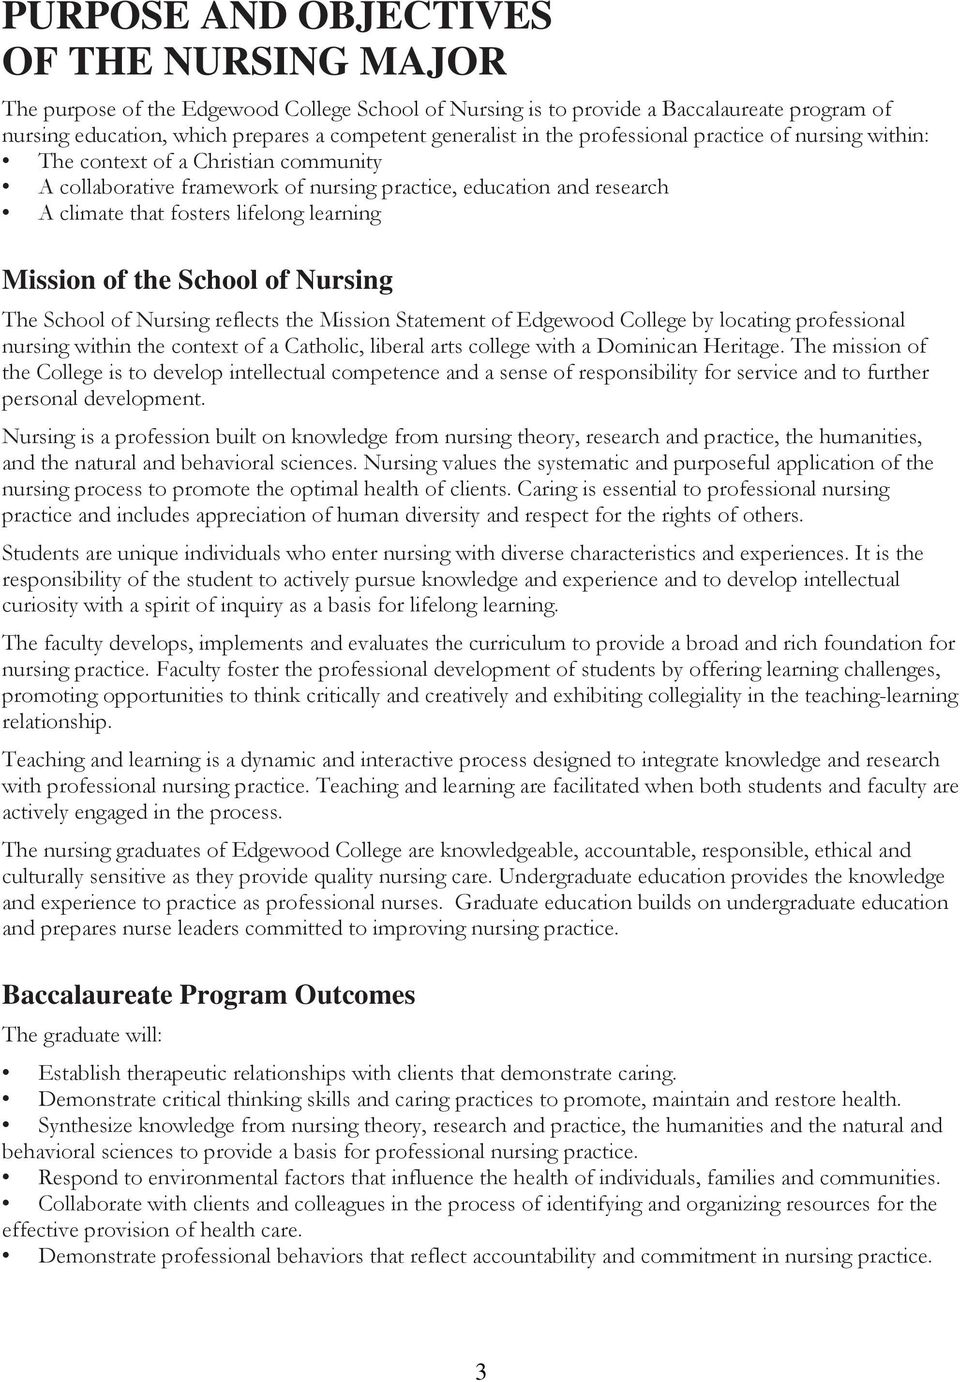 Mission of the School of Nursing The School of Nursing reflects the Mission Statement of Edgewood College by locating professional nursing within the context of a Catholic, liberal arts college with